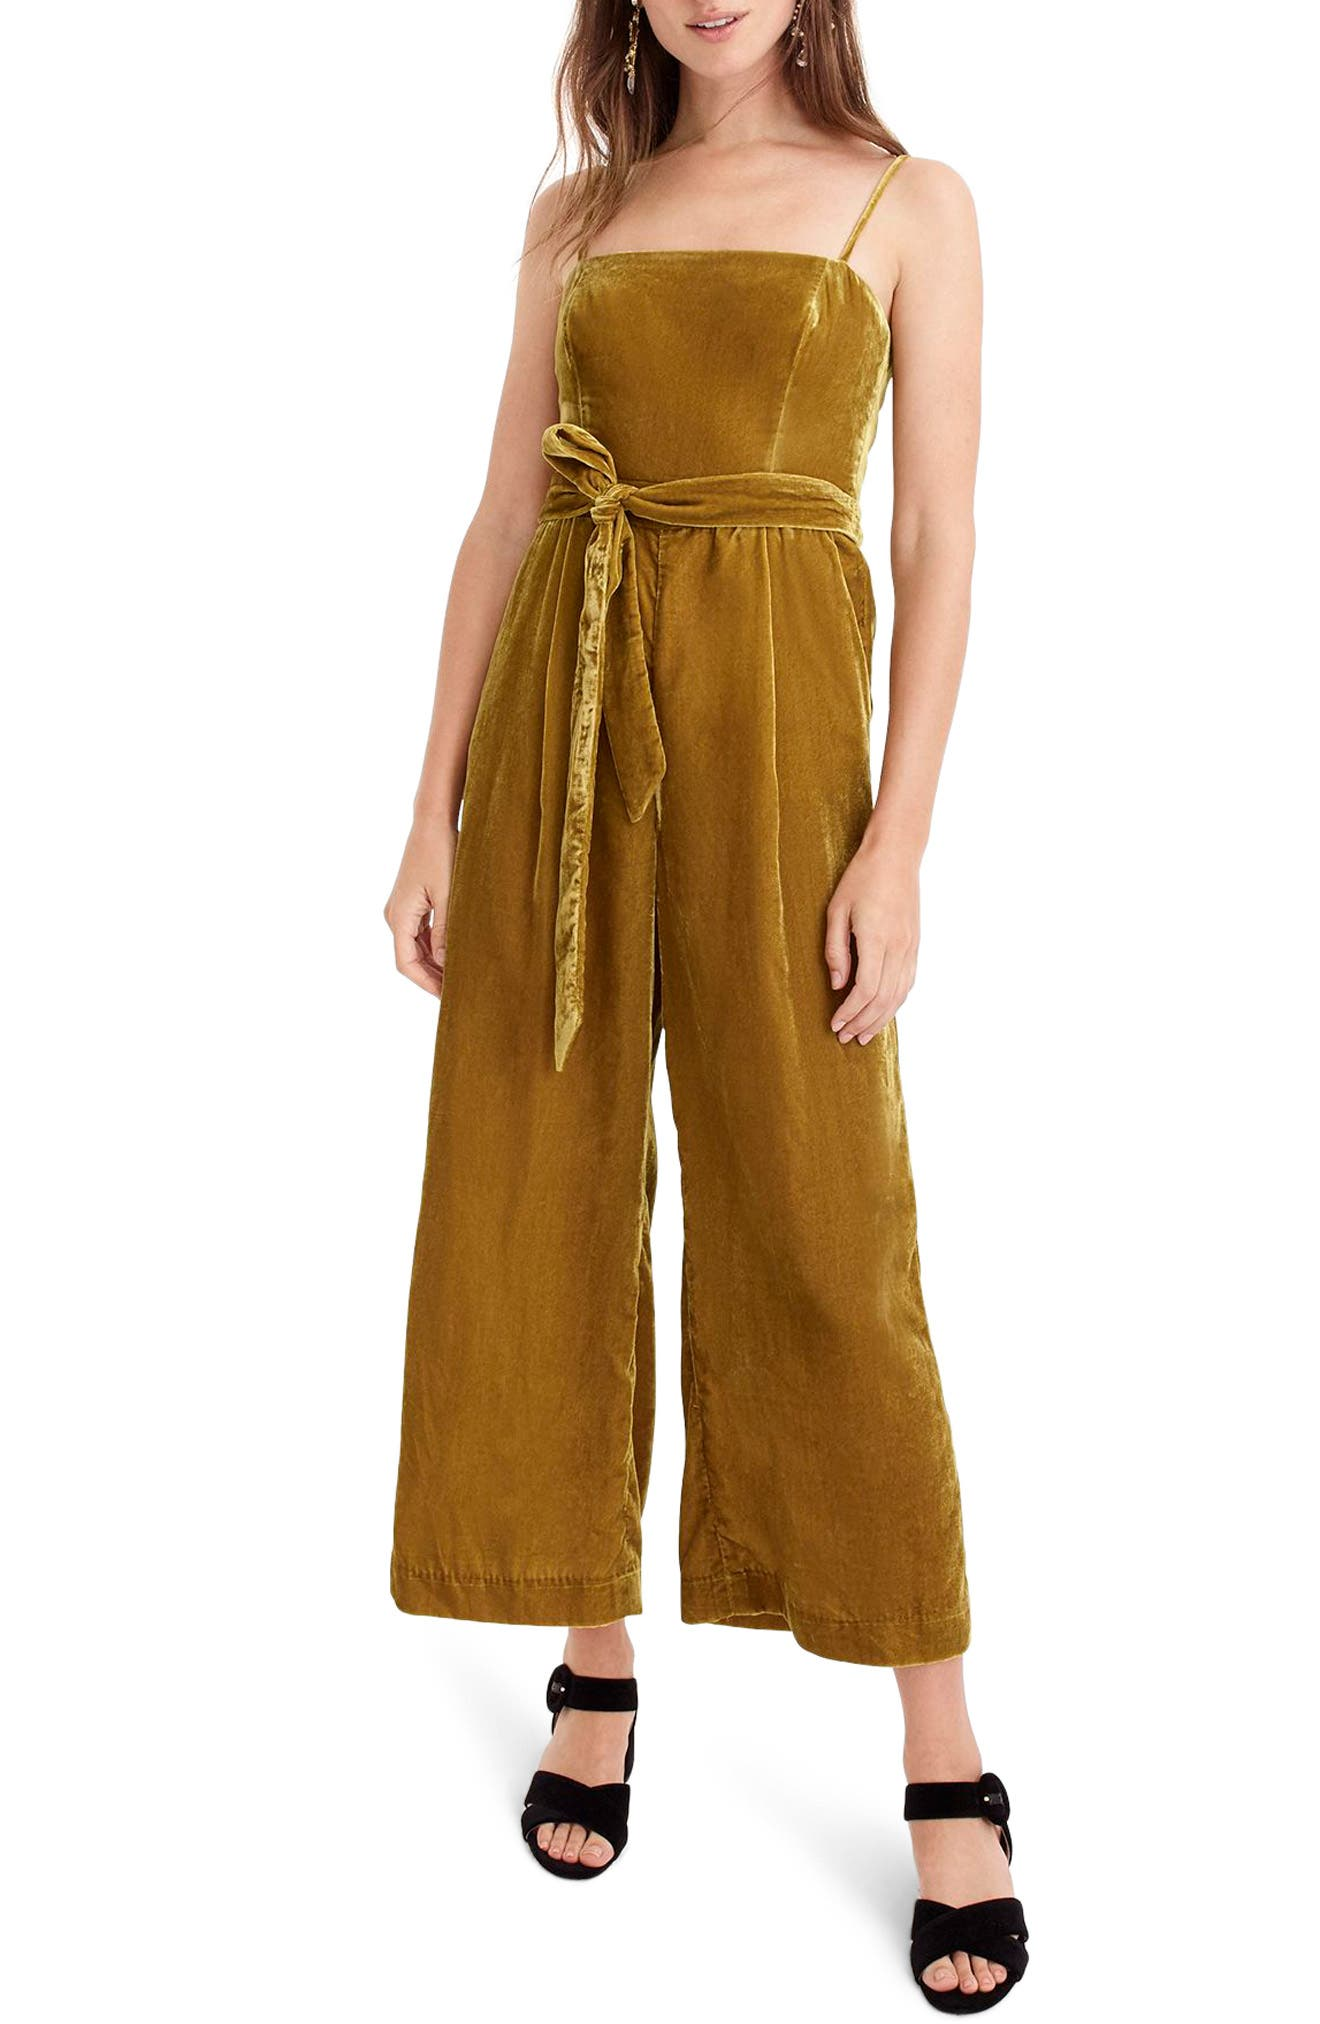 Velvet Jumpsuit with Tie,                             Alternate thumbnail 5, color,                             220